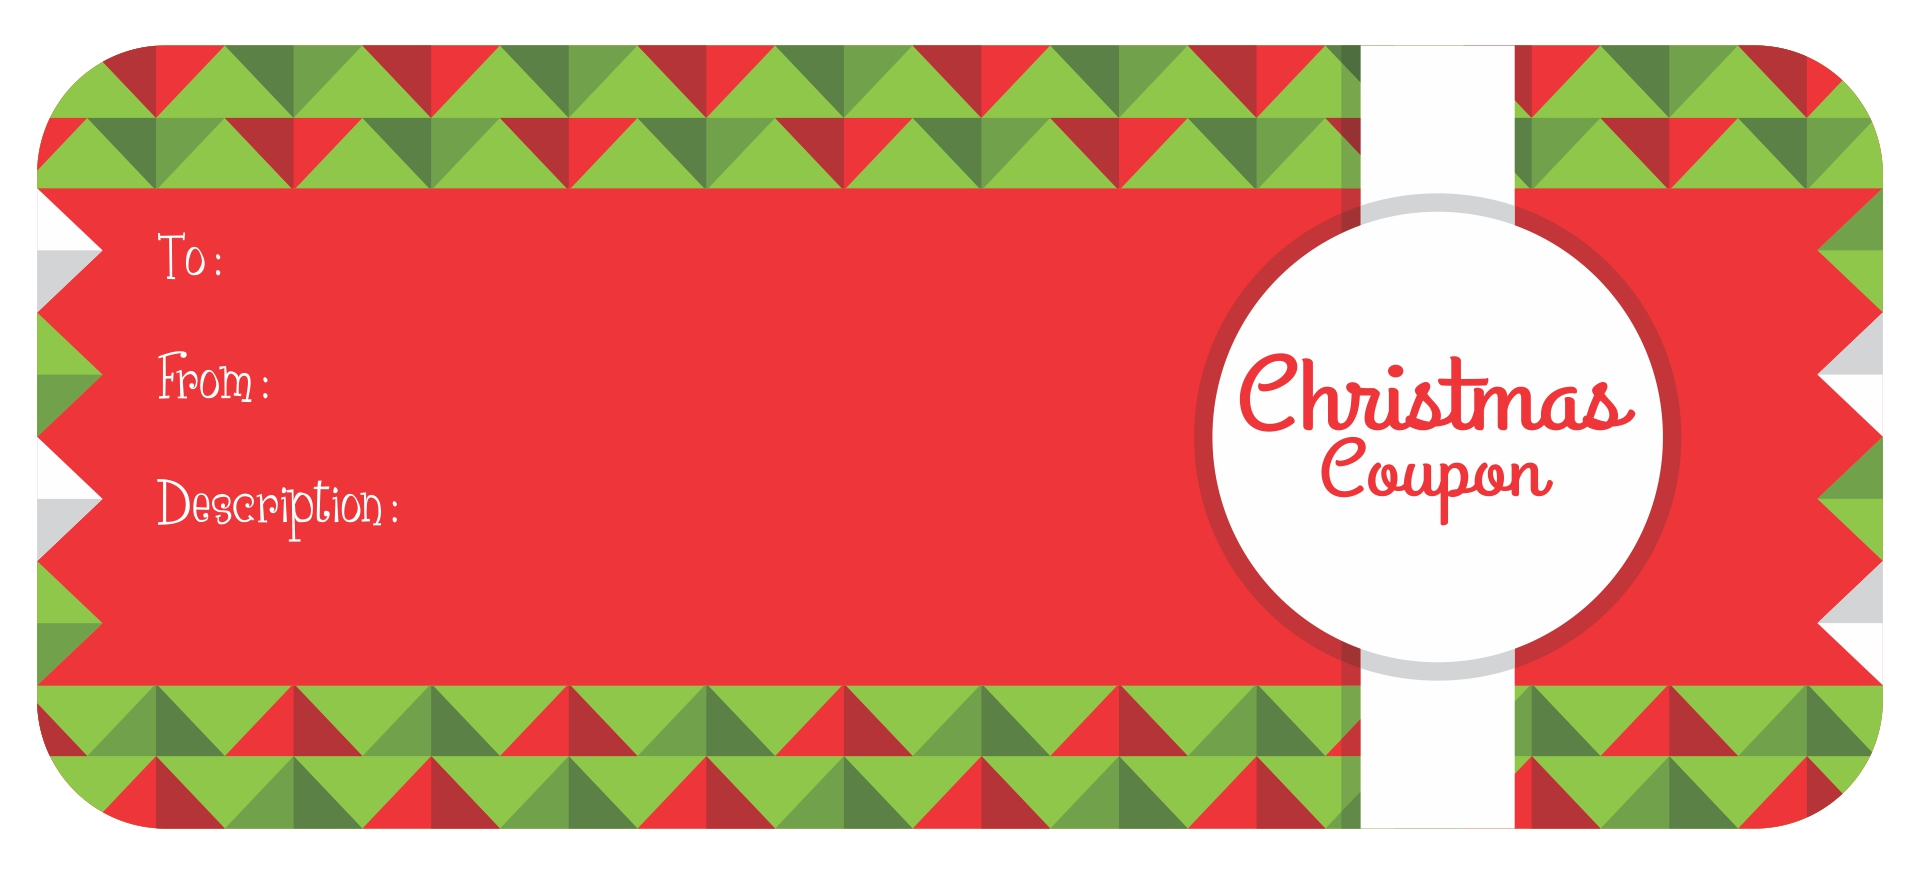 Printable Christmas Gift Voucher Templates